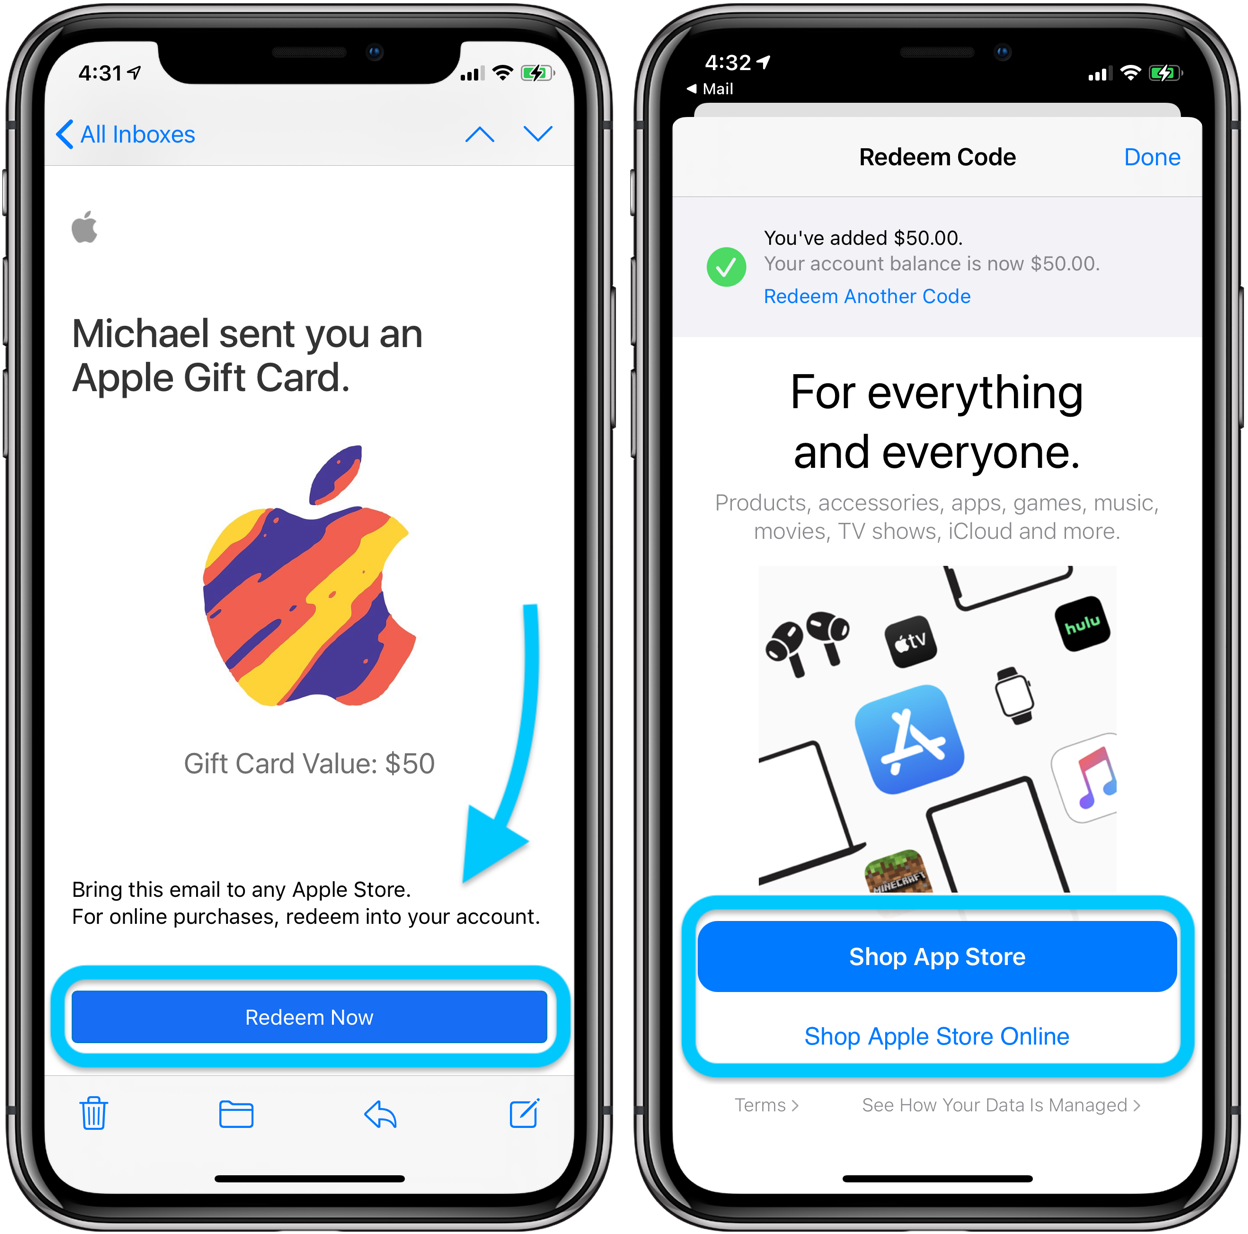 How to use Apple Gift Card on iPhone, iPad, Mac